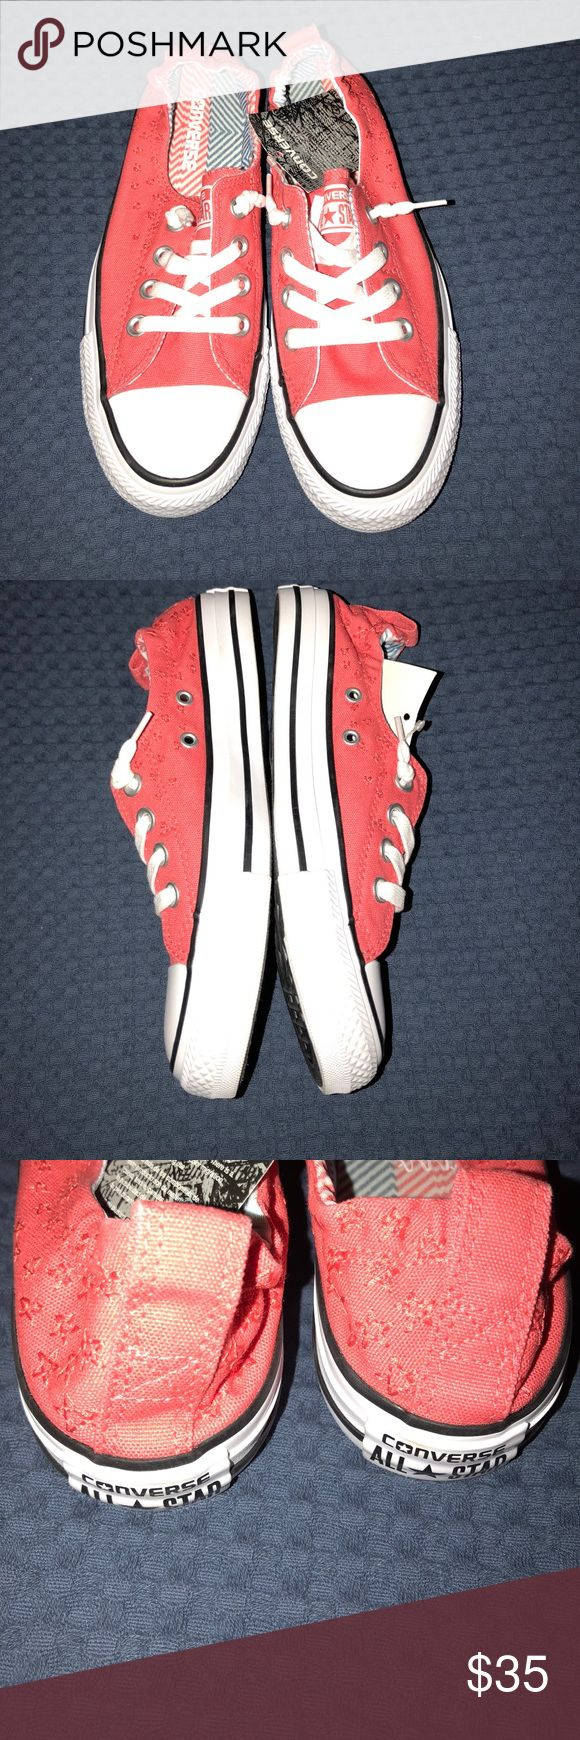 NWT coral Converse Super cute slip on Converse! Coral color. Price is firm! Add to a bundle for a discount Converse Shoes Athletic Shoes